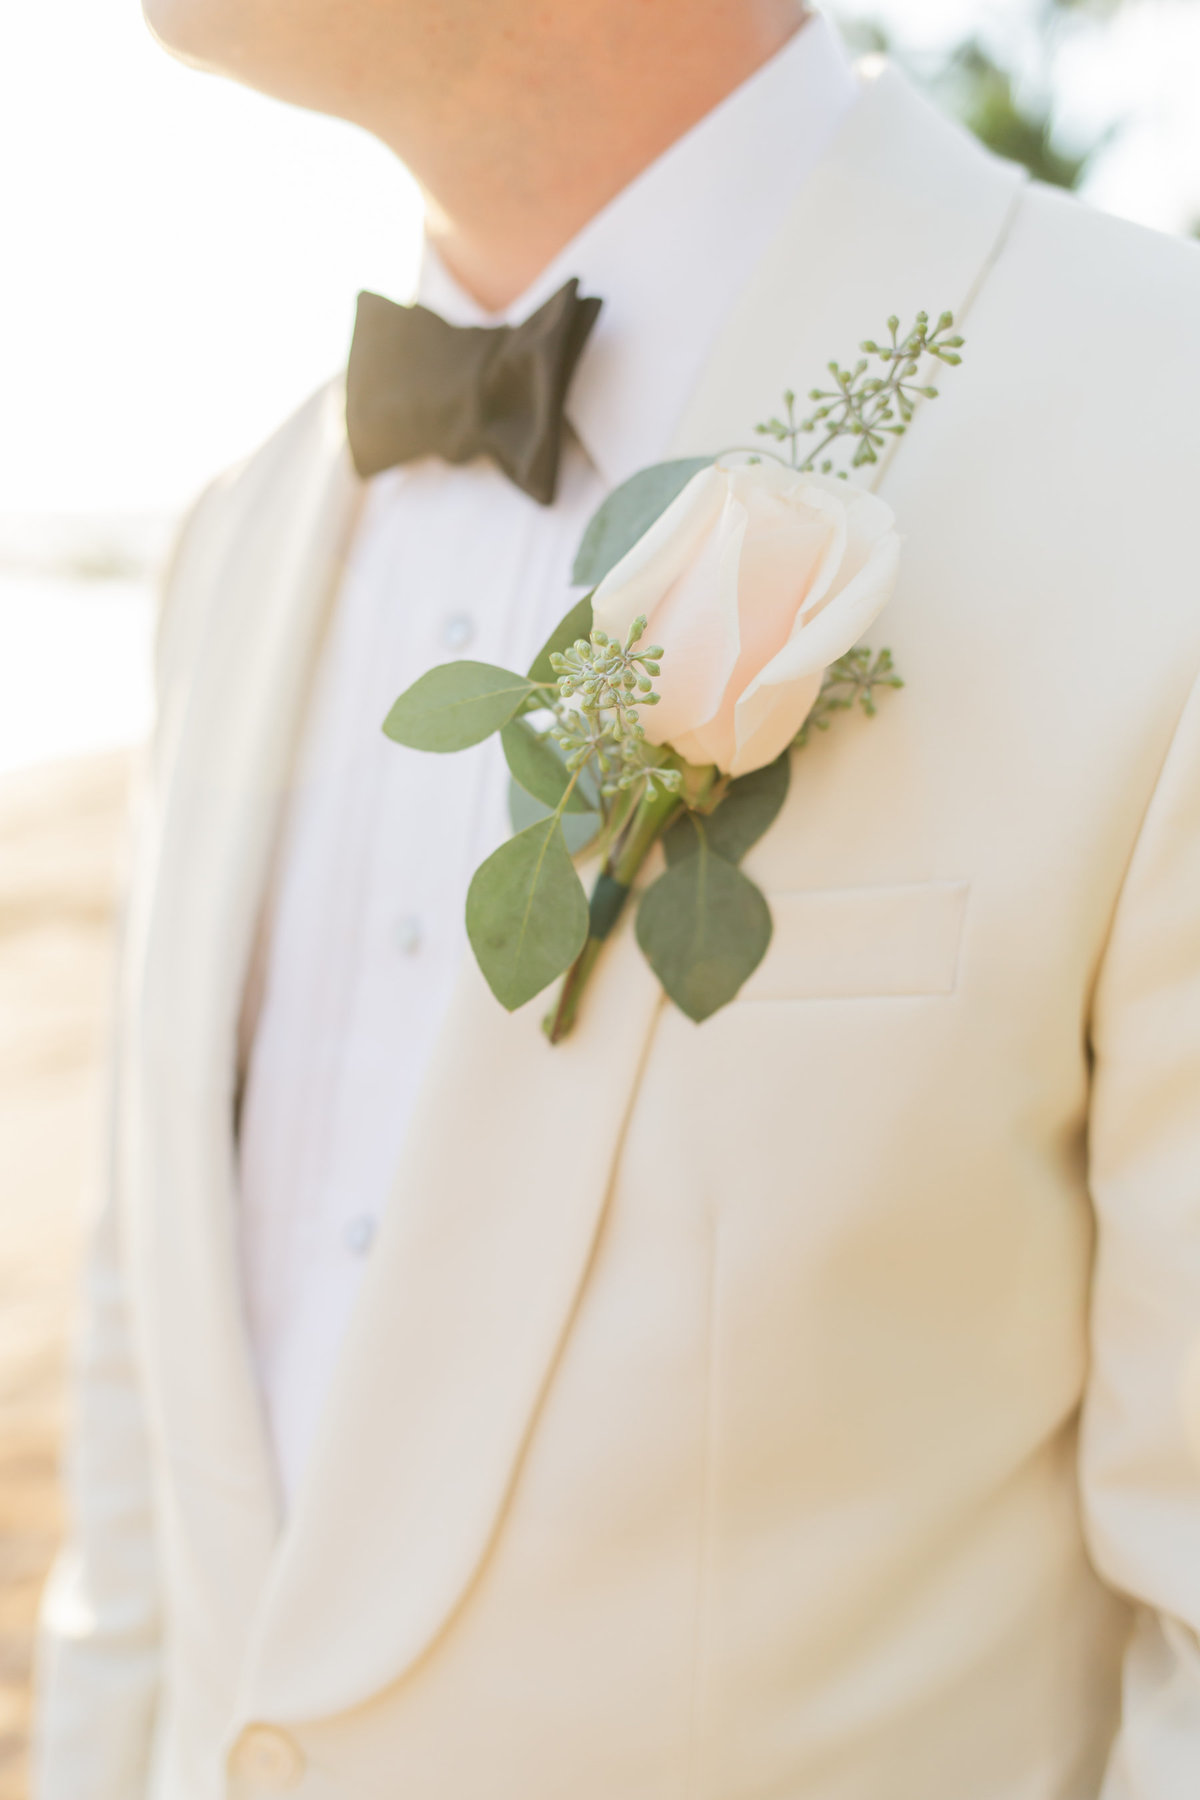 Maui venue wedding photography - groom - boutonniere